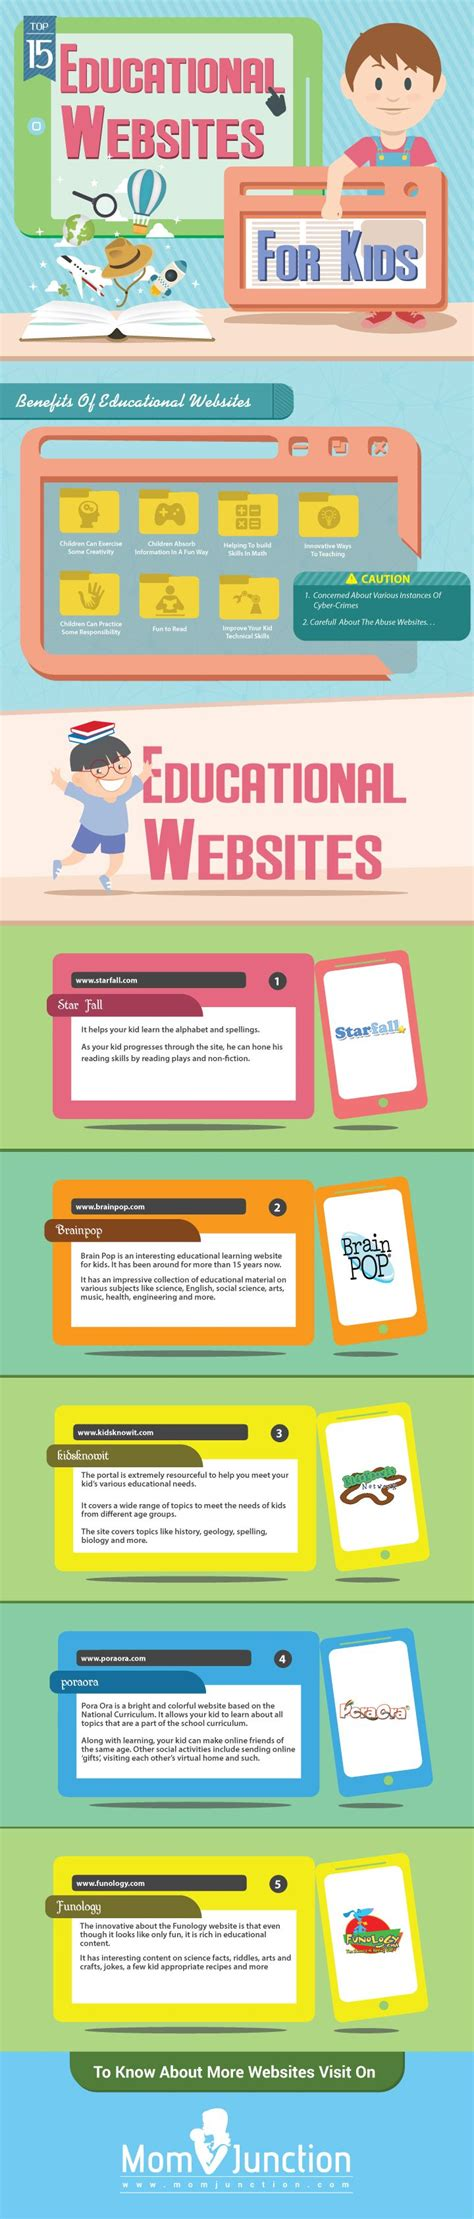 educational top 15 educational websites for kids jobloving com your number one source for